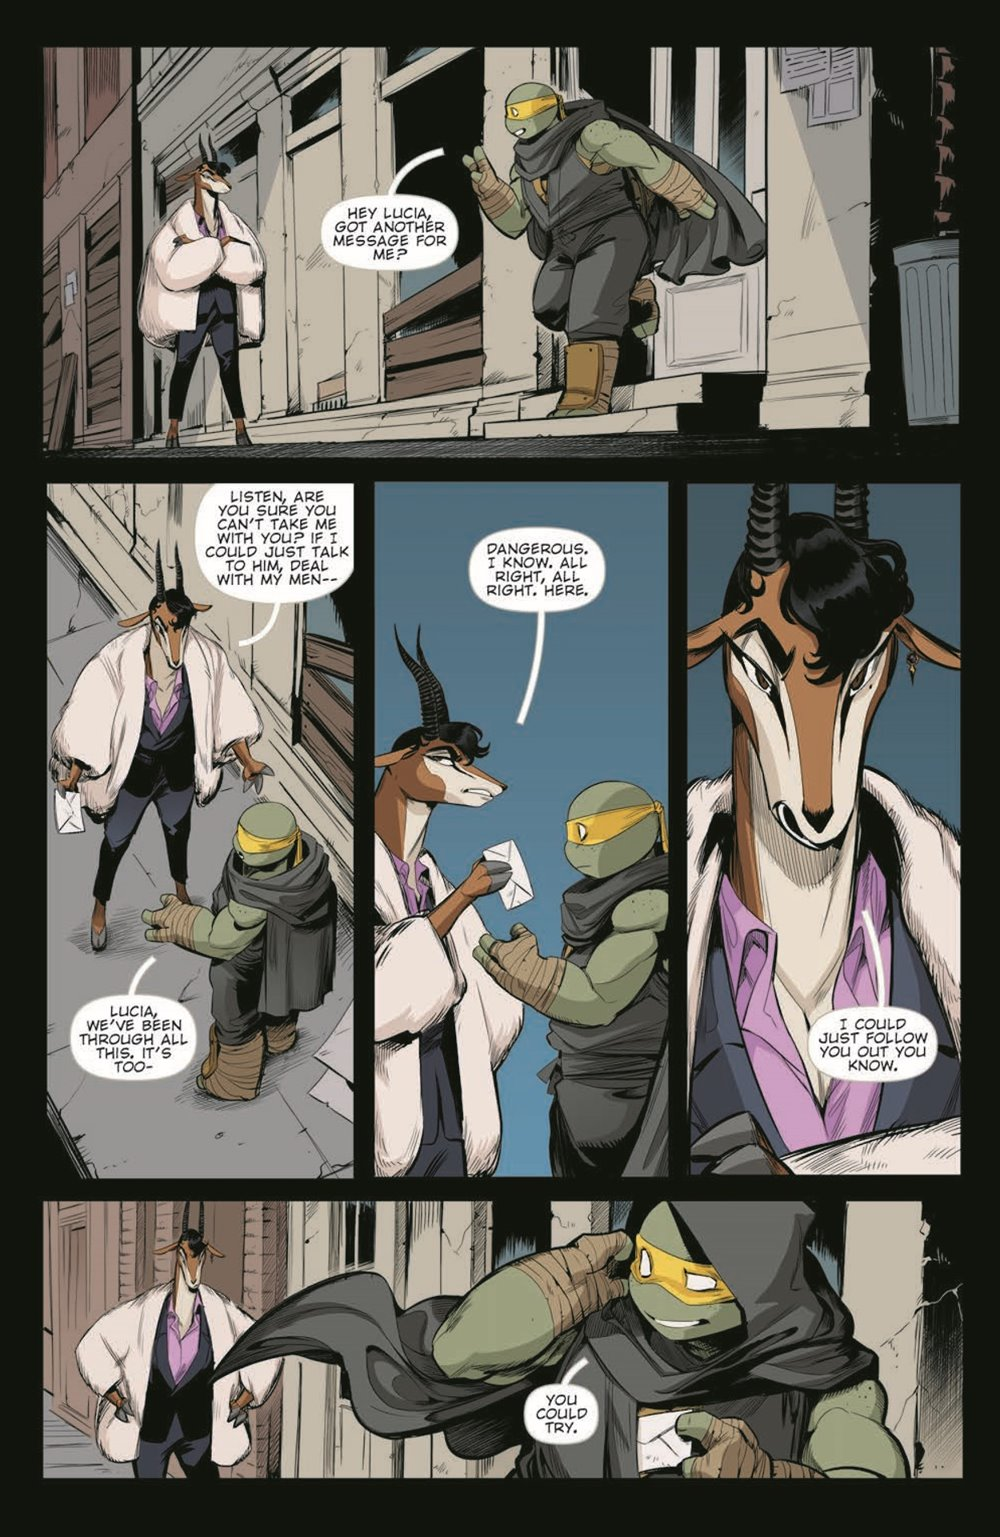 TMNT-JennikaII_05_pr-6 ComicList Previews: TEENAGE MUTANT NINJA TURTLES JENNIKA II #5 (OF 6)